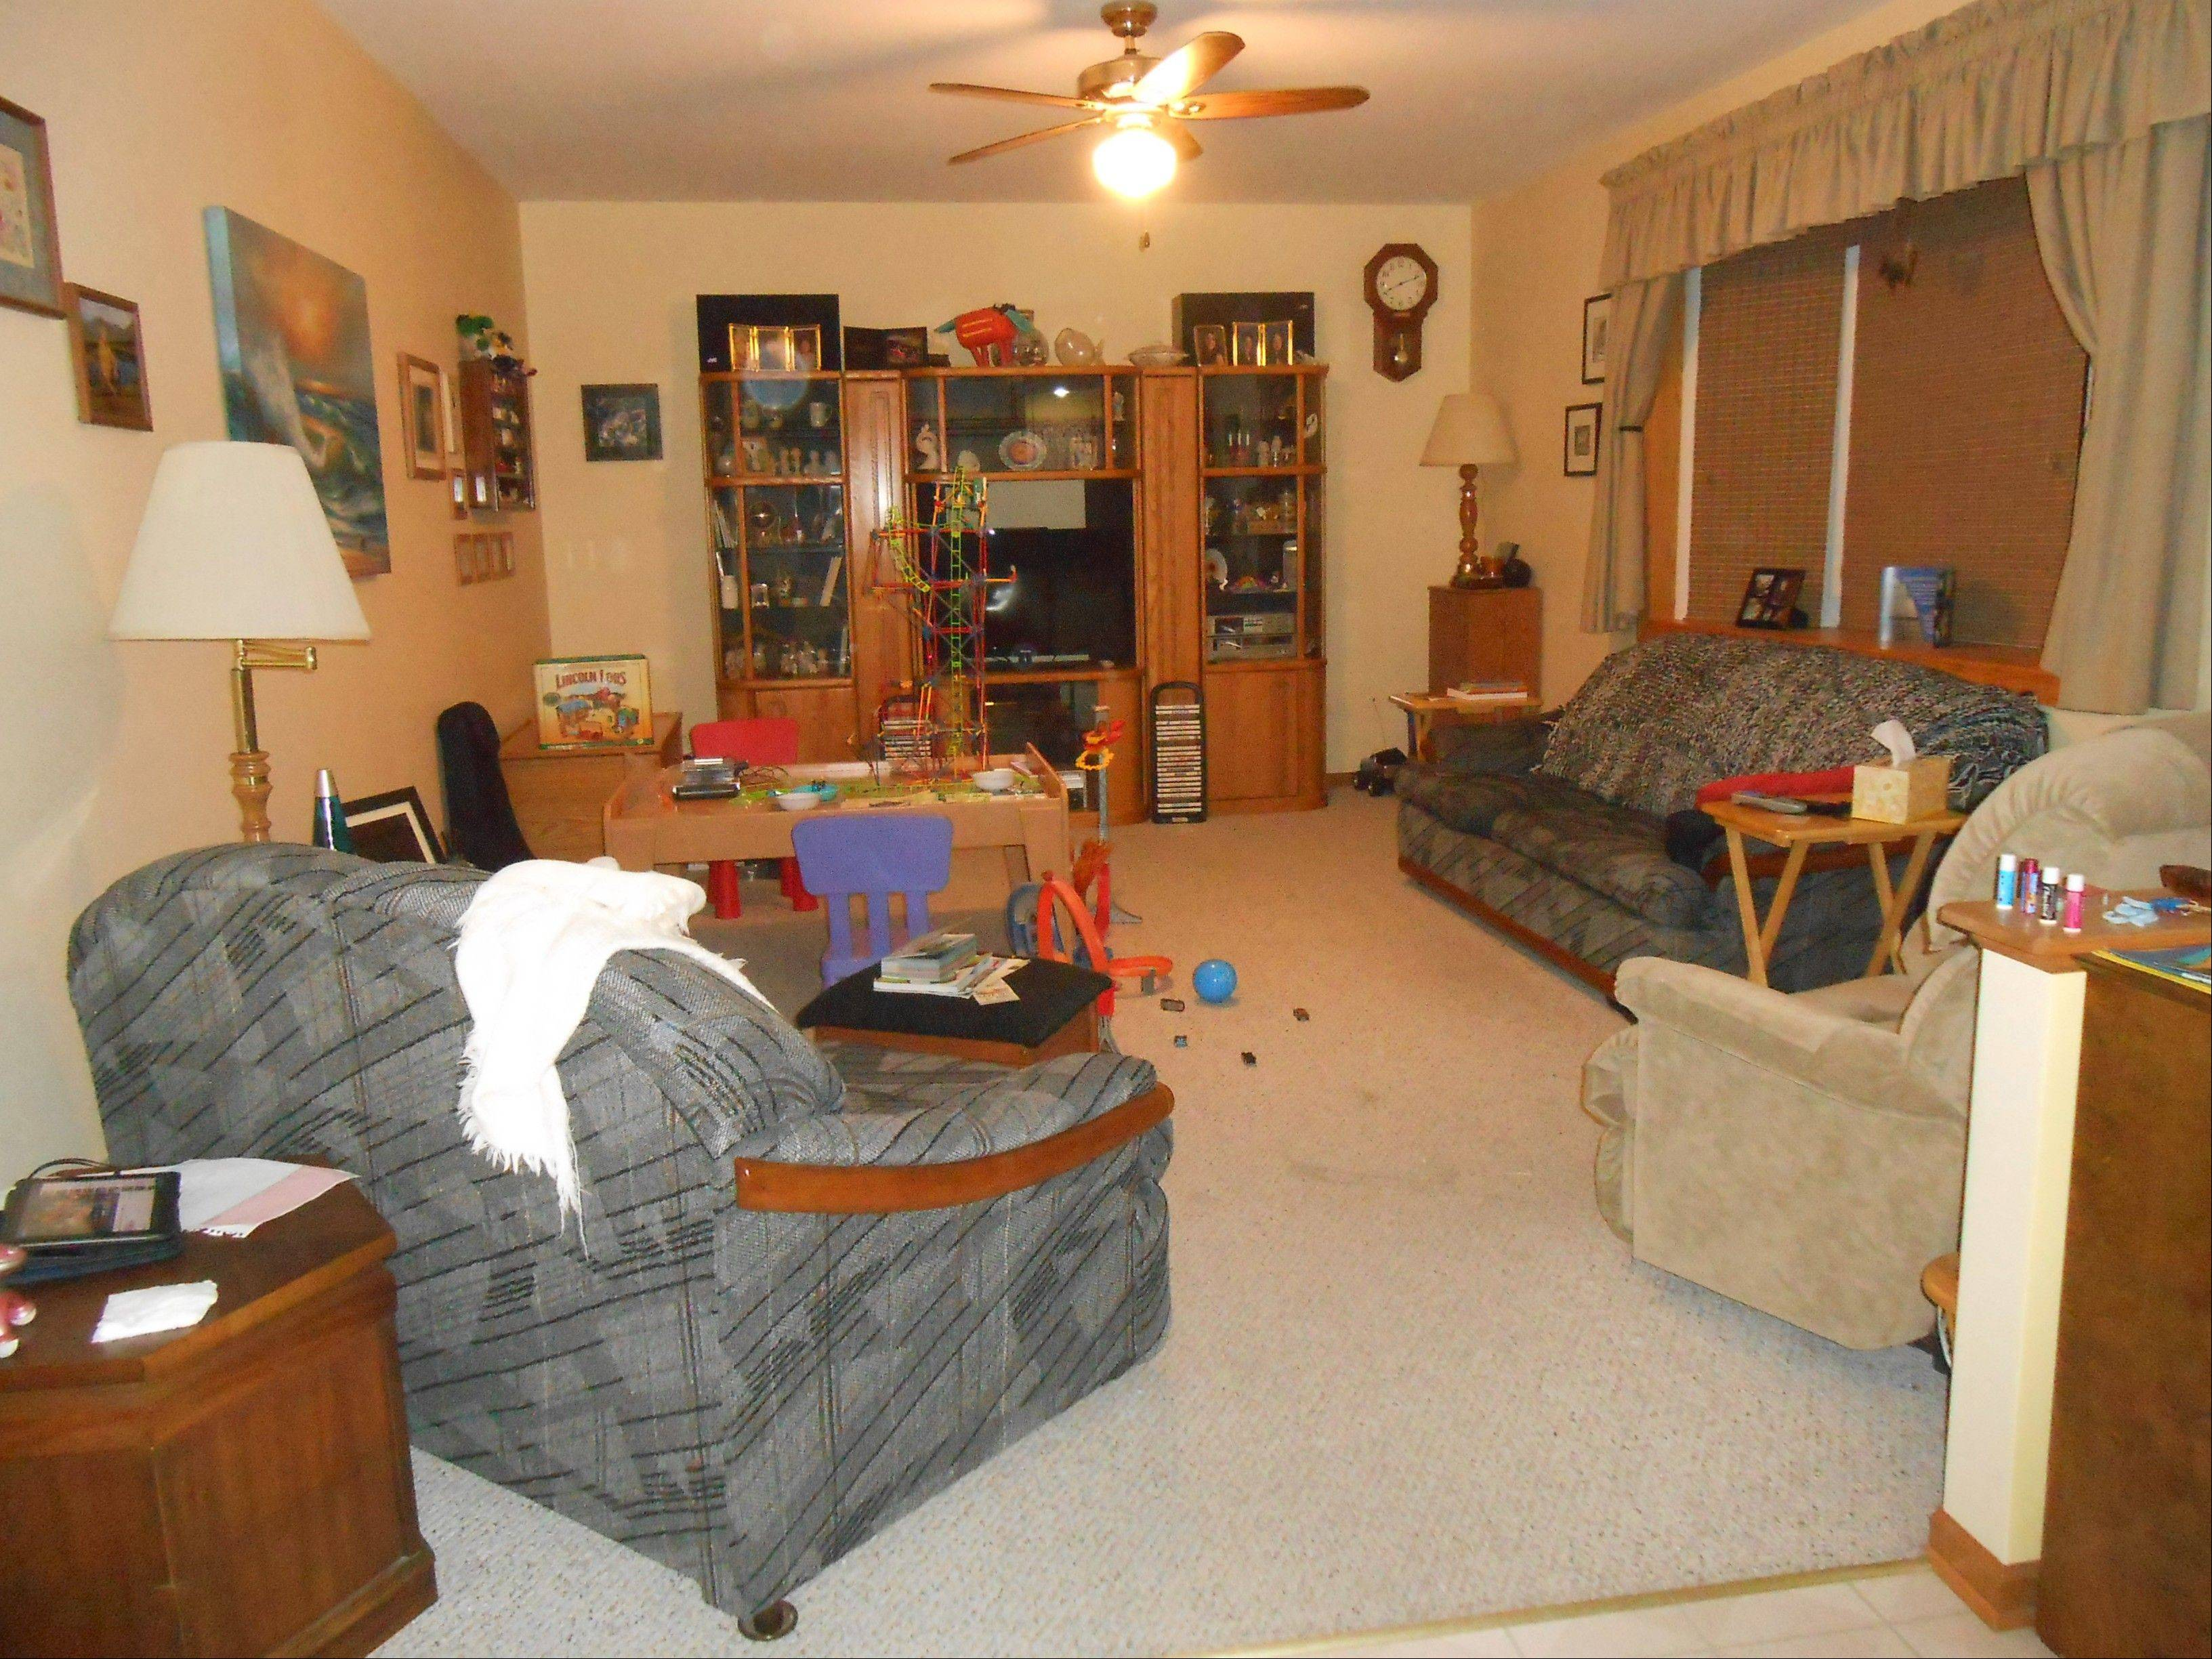 Kim King of Huntley nominated her family room with outdated furniture.